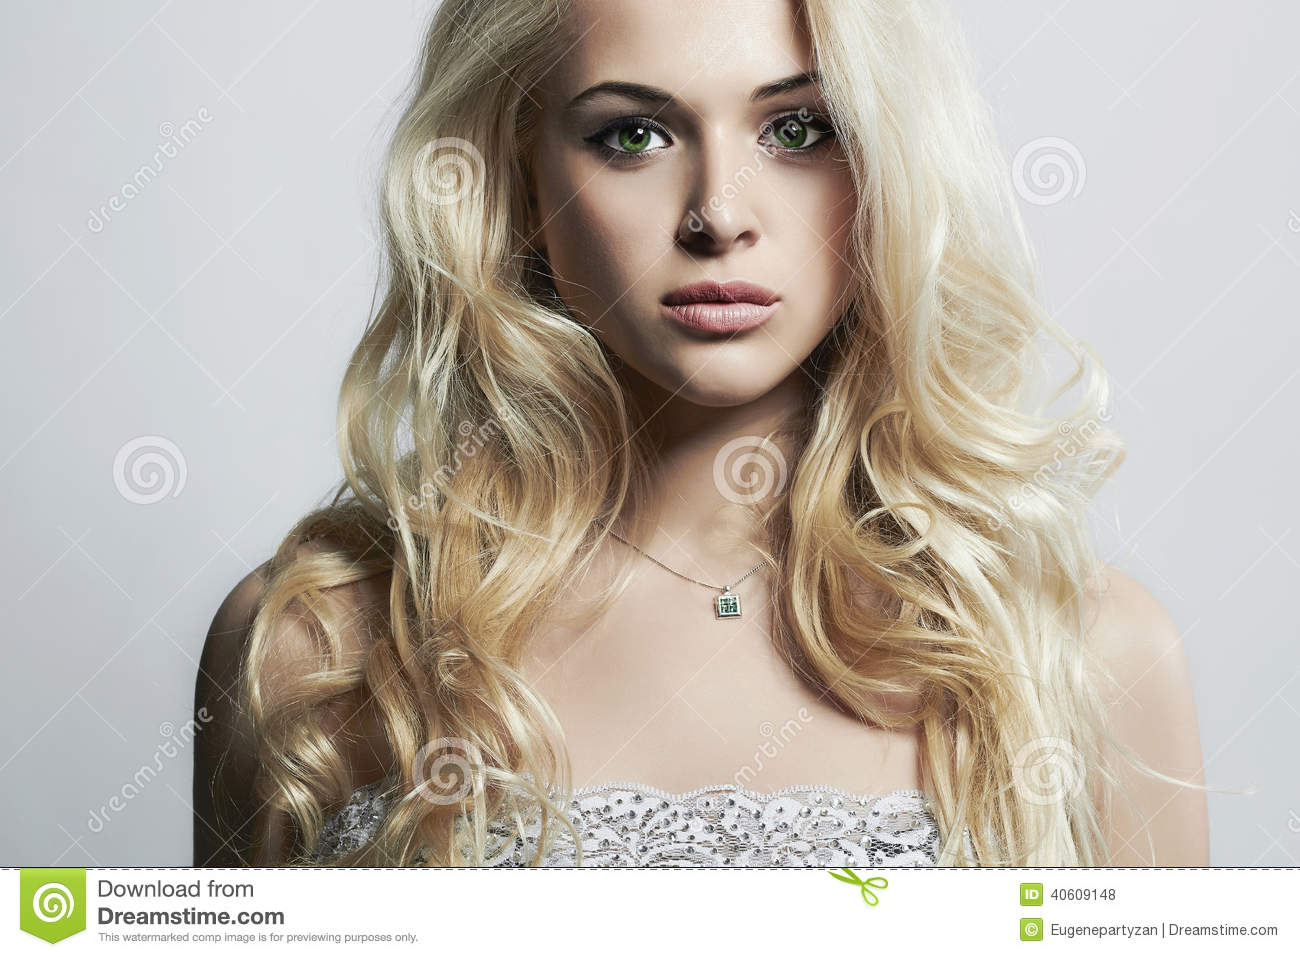 Fashion portrait of young beautiful woman.Sexy blonde.Curly hairstyle